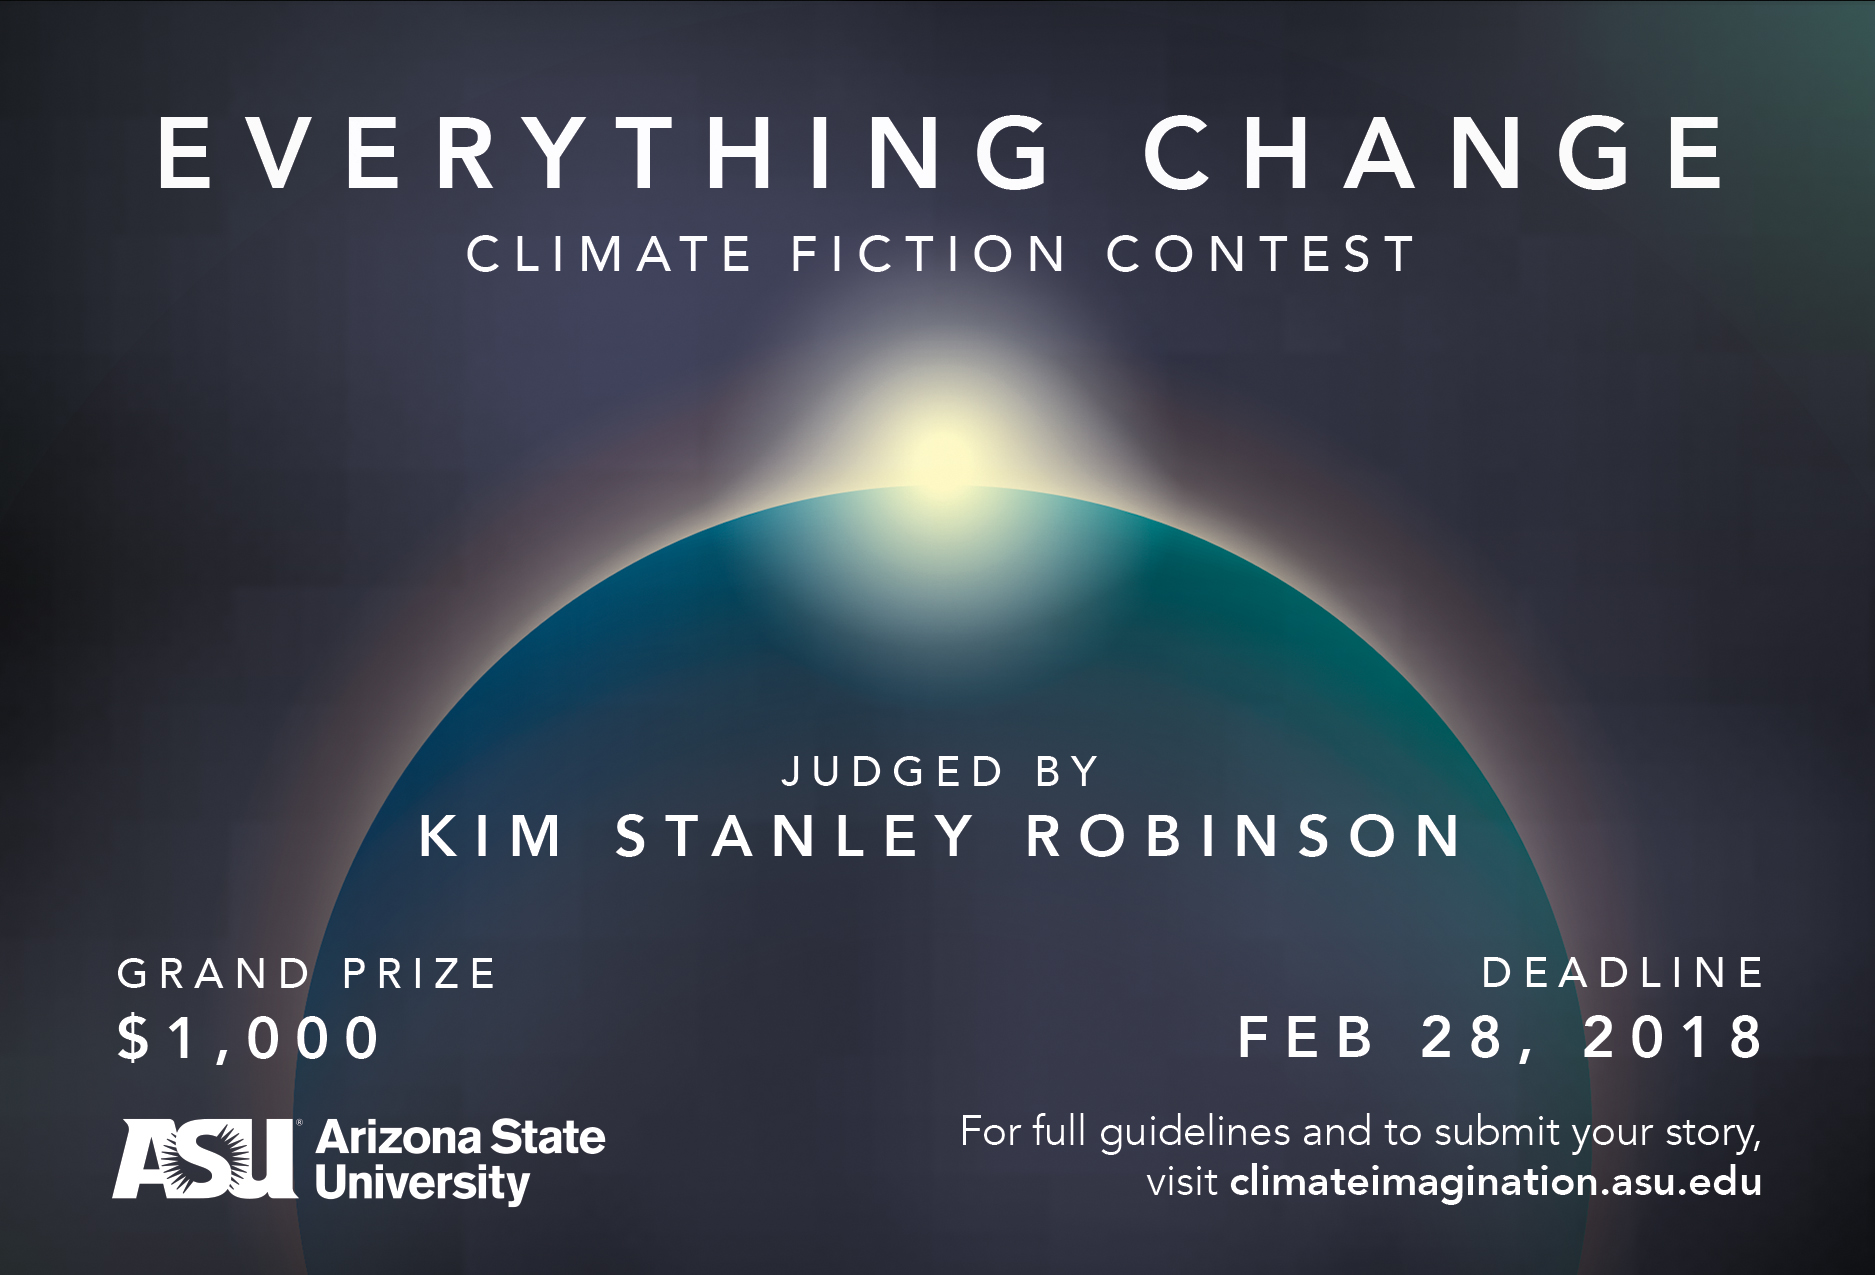 Deadline for Everything Change Climate Fiction Contest is